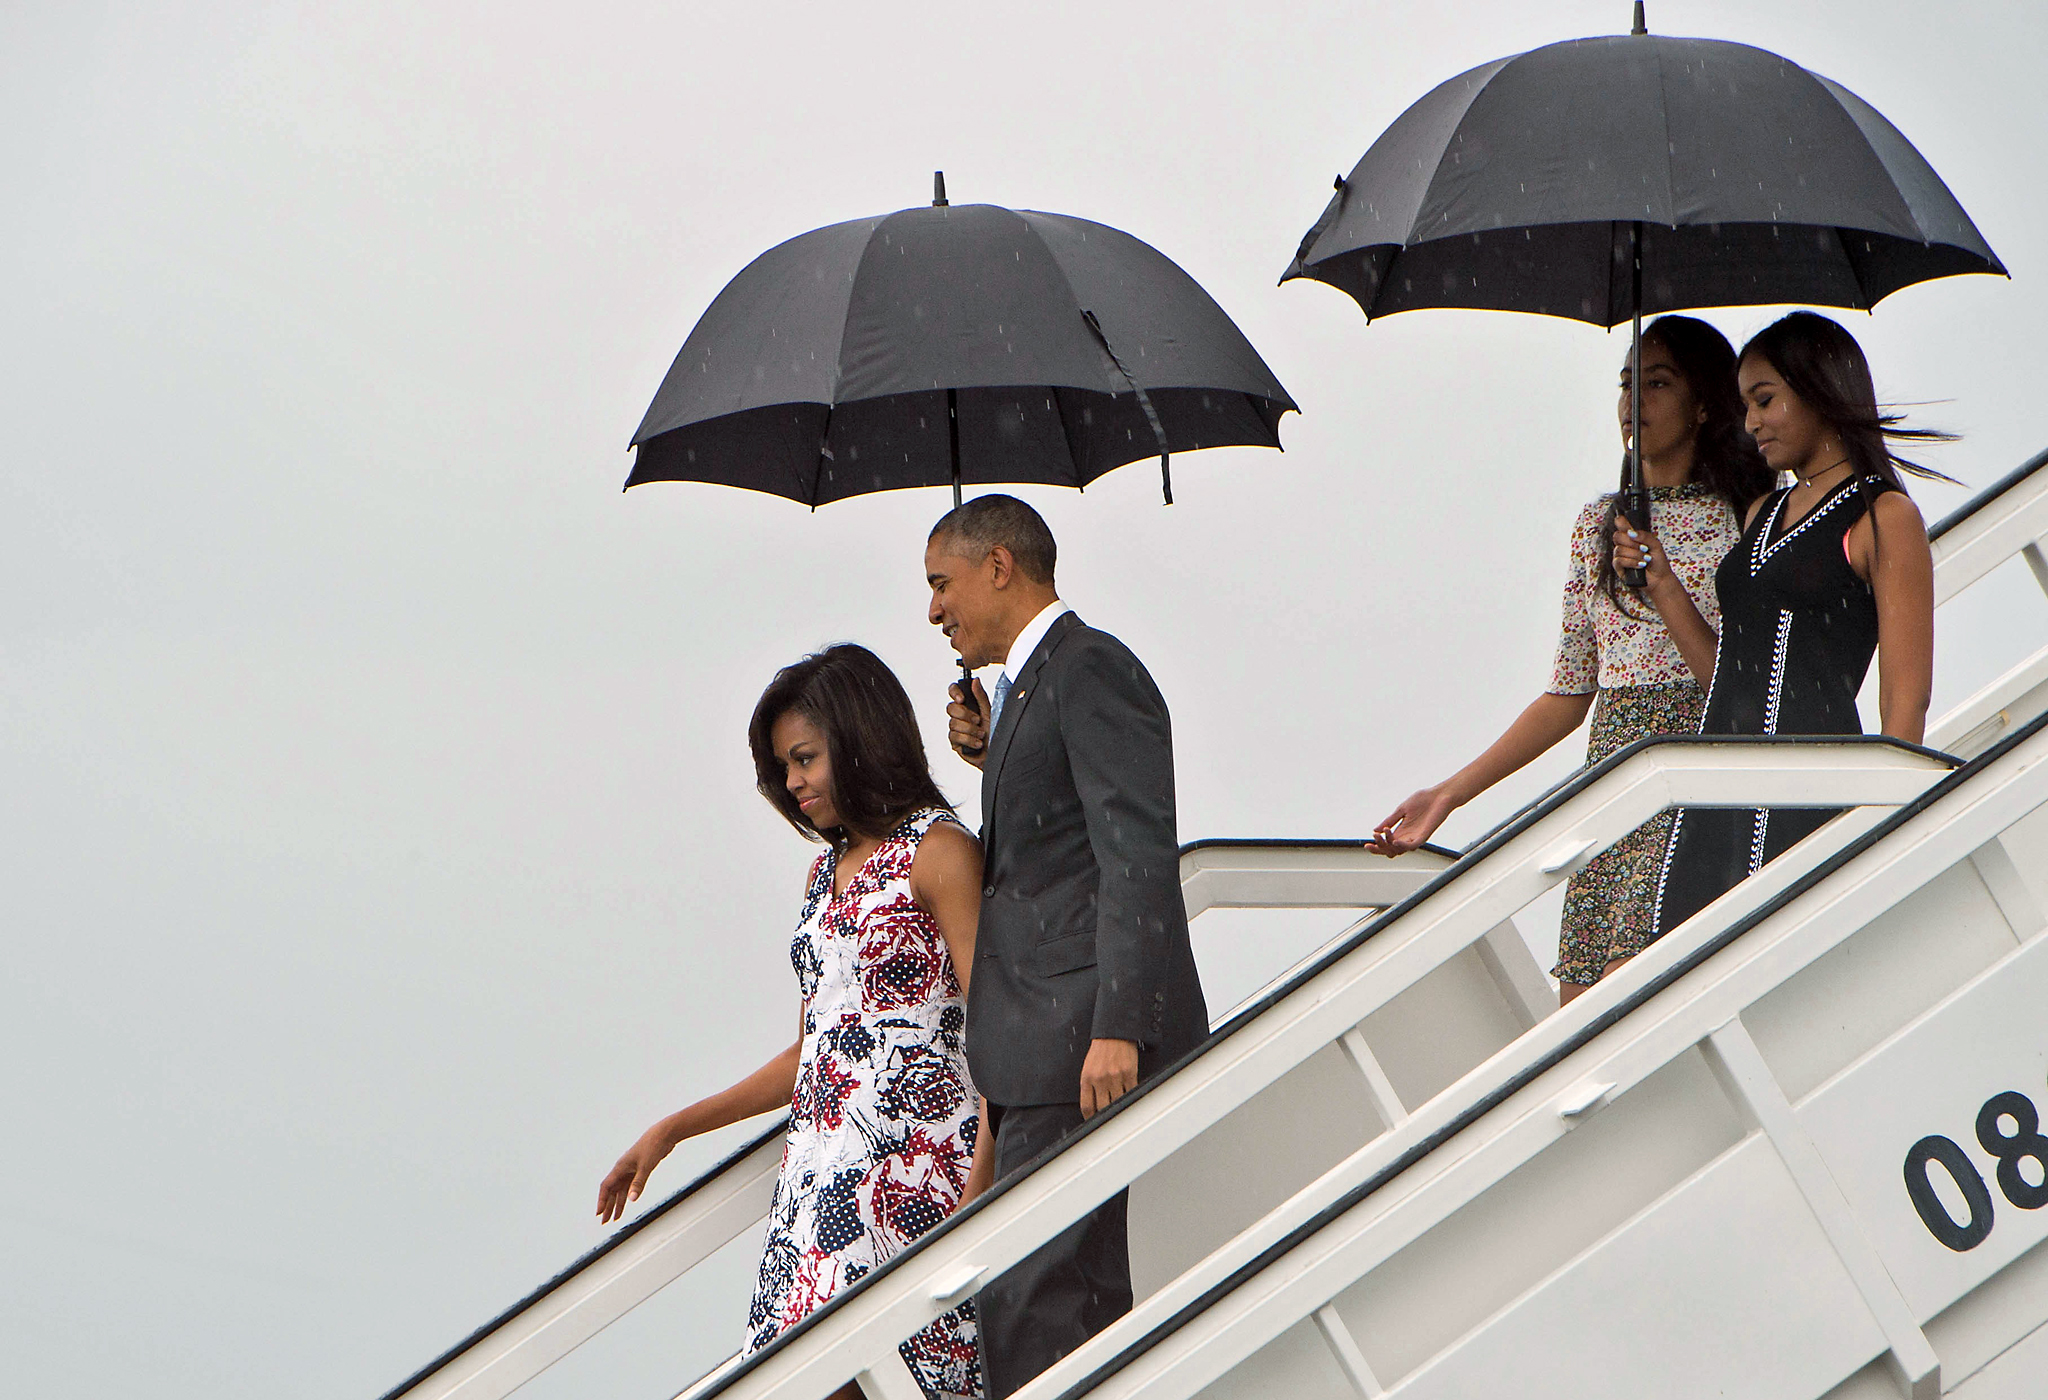 US President Barack Obama (2nd L), First...US President Barack Obama (2nd L), First Lady Michelle Obama (L) and daughters Malia (2nd R) and Sasha (R) disembark from Air Force One at the Jose Marti International Airport in Havana on March 20, 2016. Obama arrived in Cuba to bury the hatchet in a more than half-century-long Cold War conflict that turned the communist island and its giant neighbor into bitter enemies.     AFP PHOTO/Nicholas KAMMNICHOLAS KAMM/AFP/Getty Images